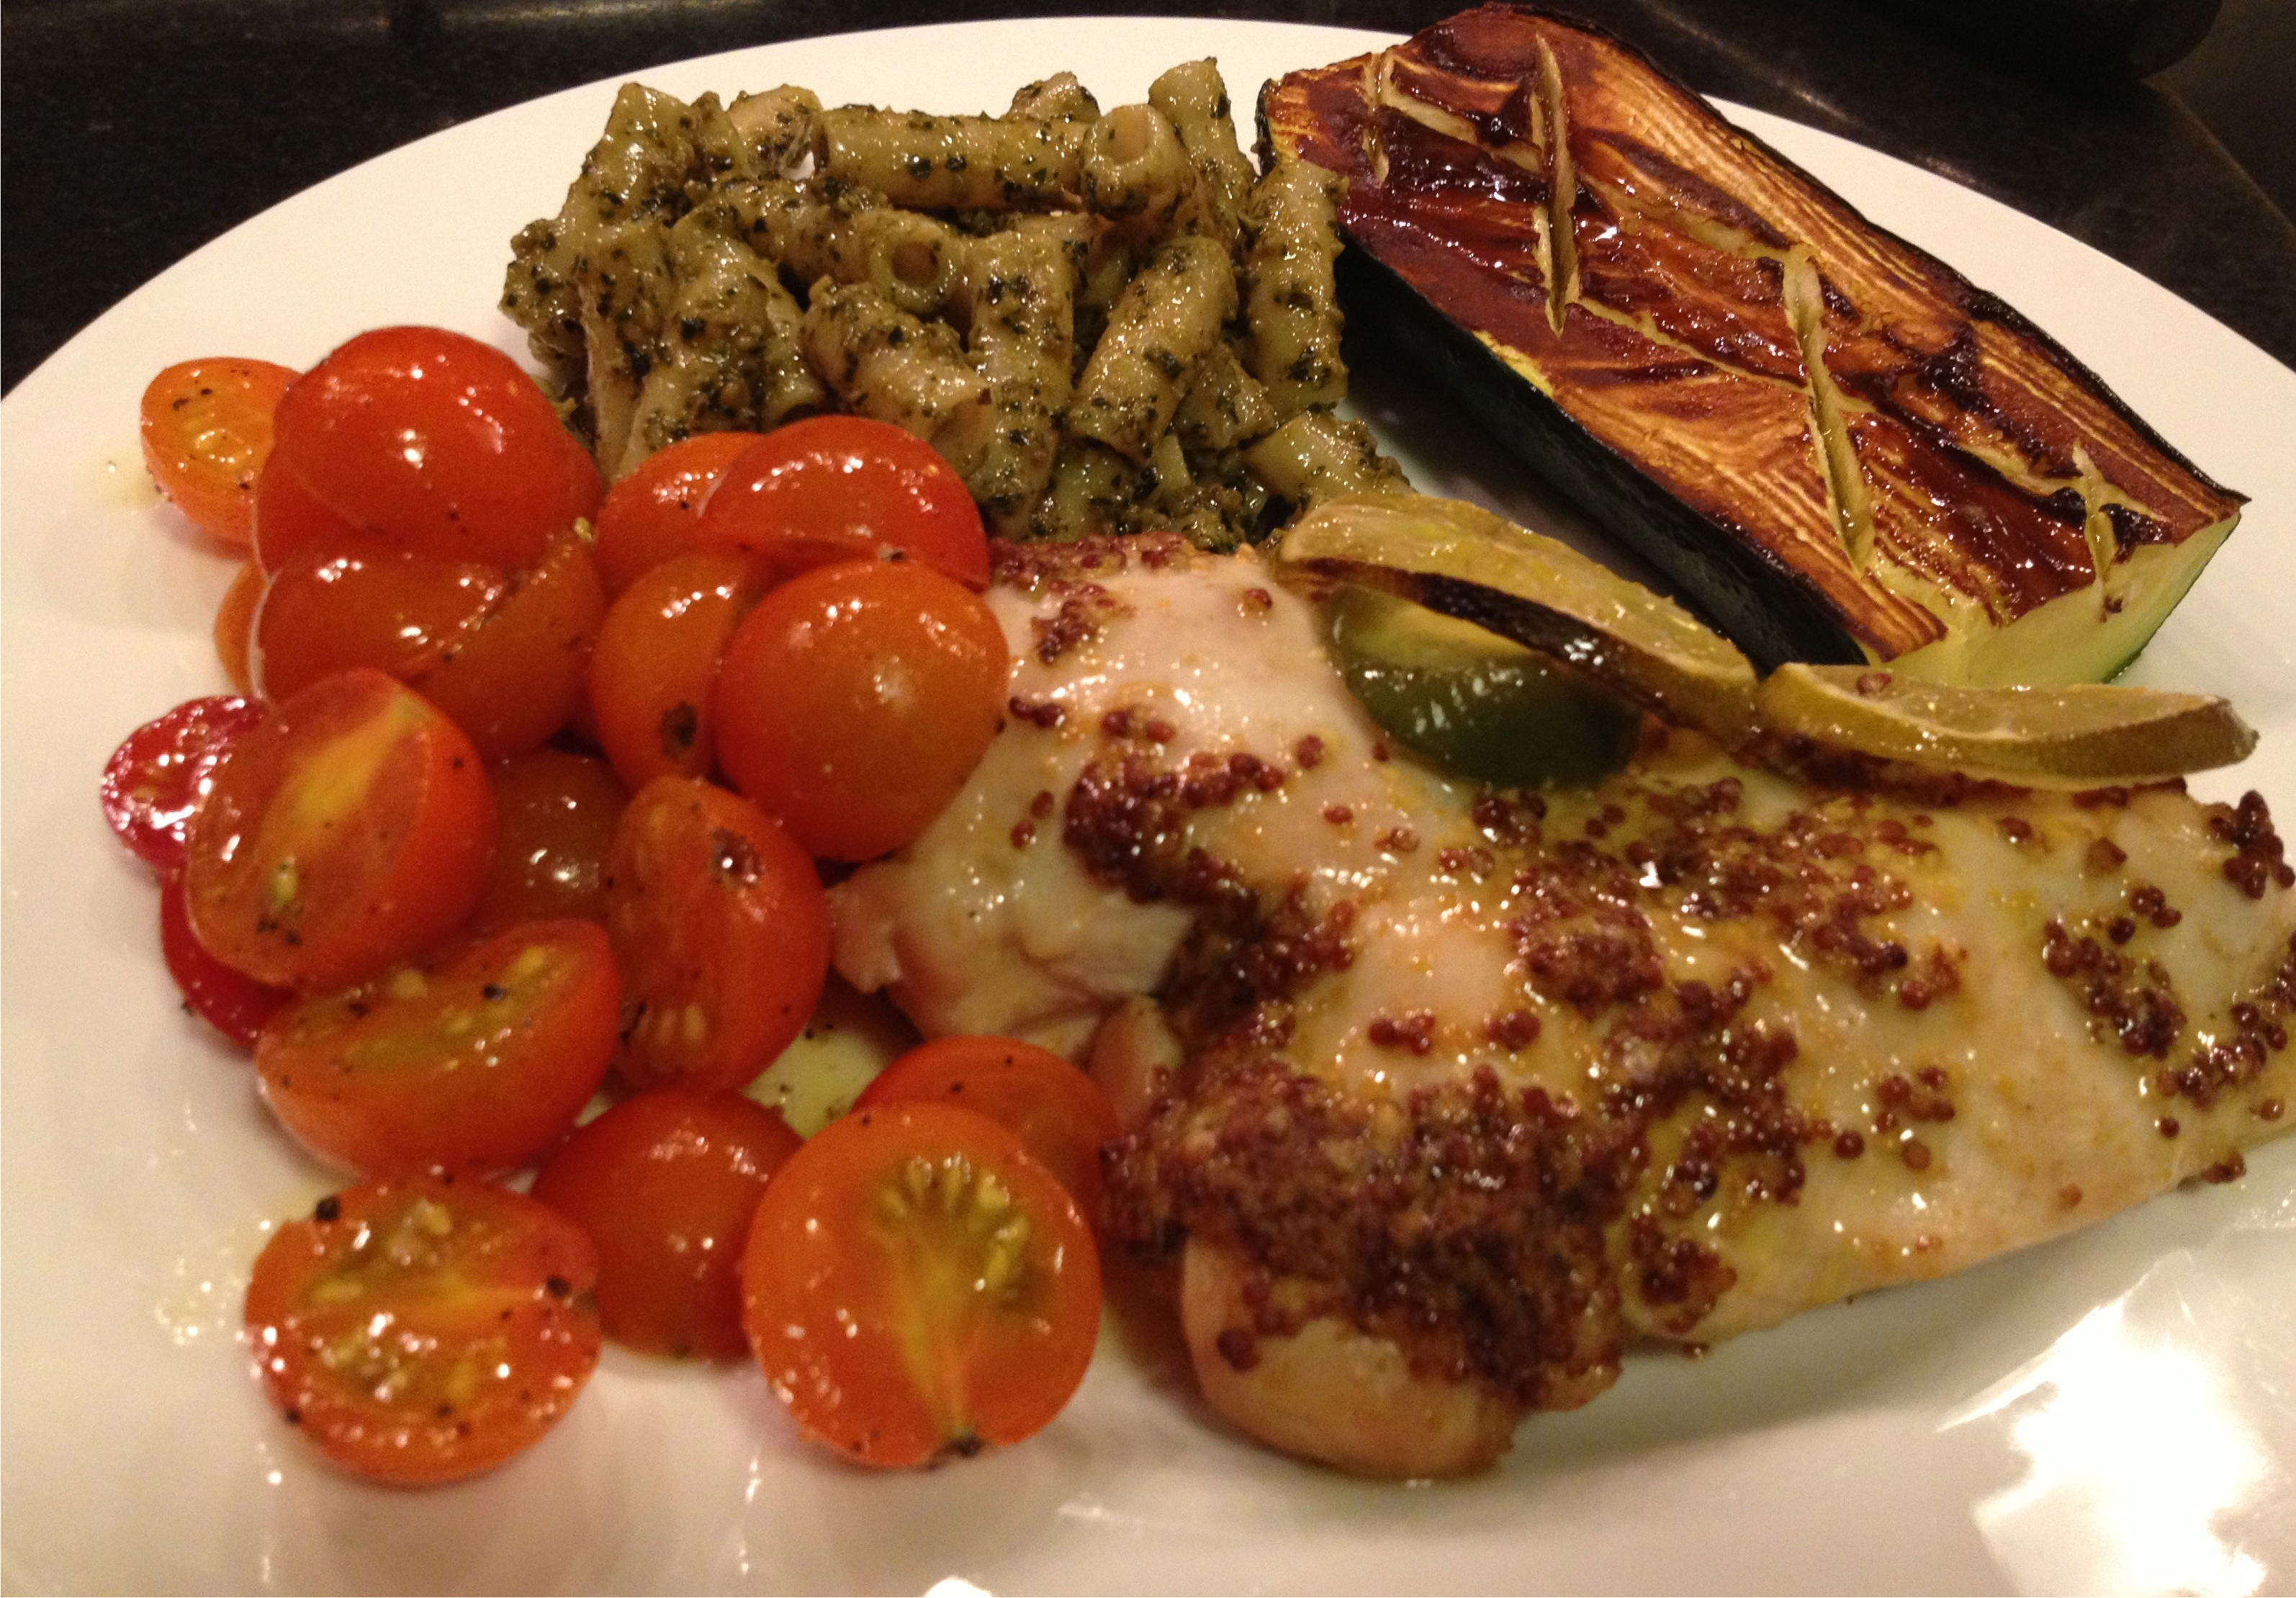 Tamarind glazed squash, grainy mustard coated chicken breast with brown rice pasta with pesto and sunny gold farmer's market tomatoes on a white Wedgewood plate.